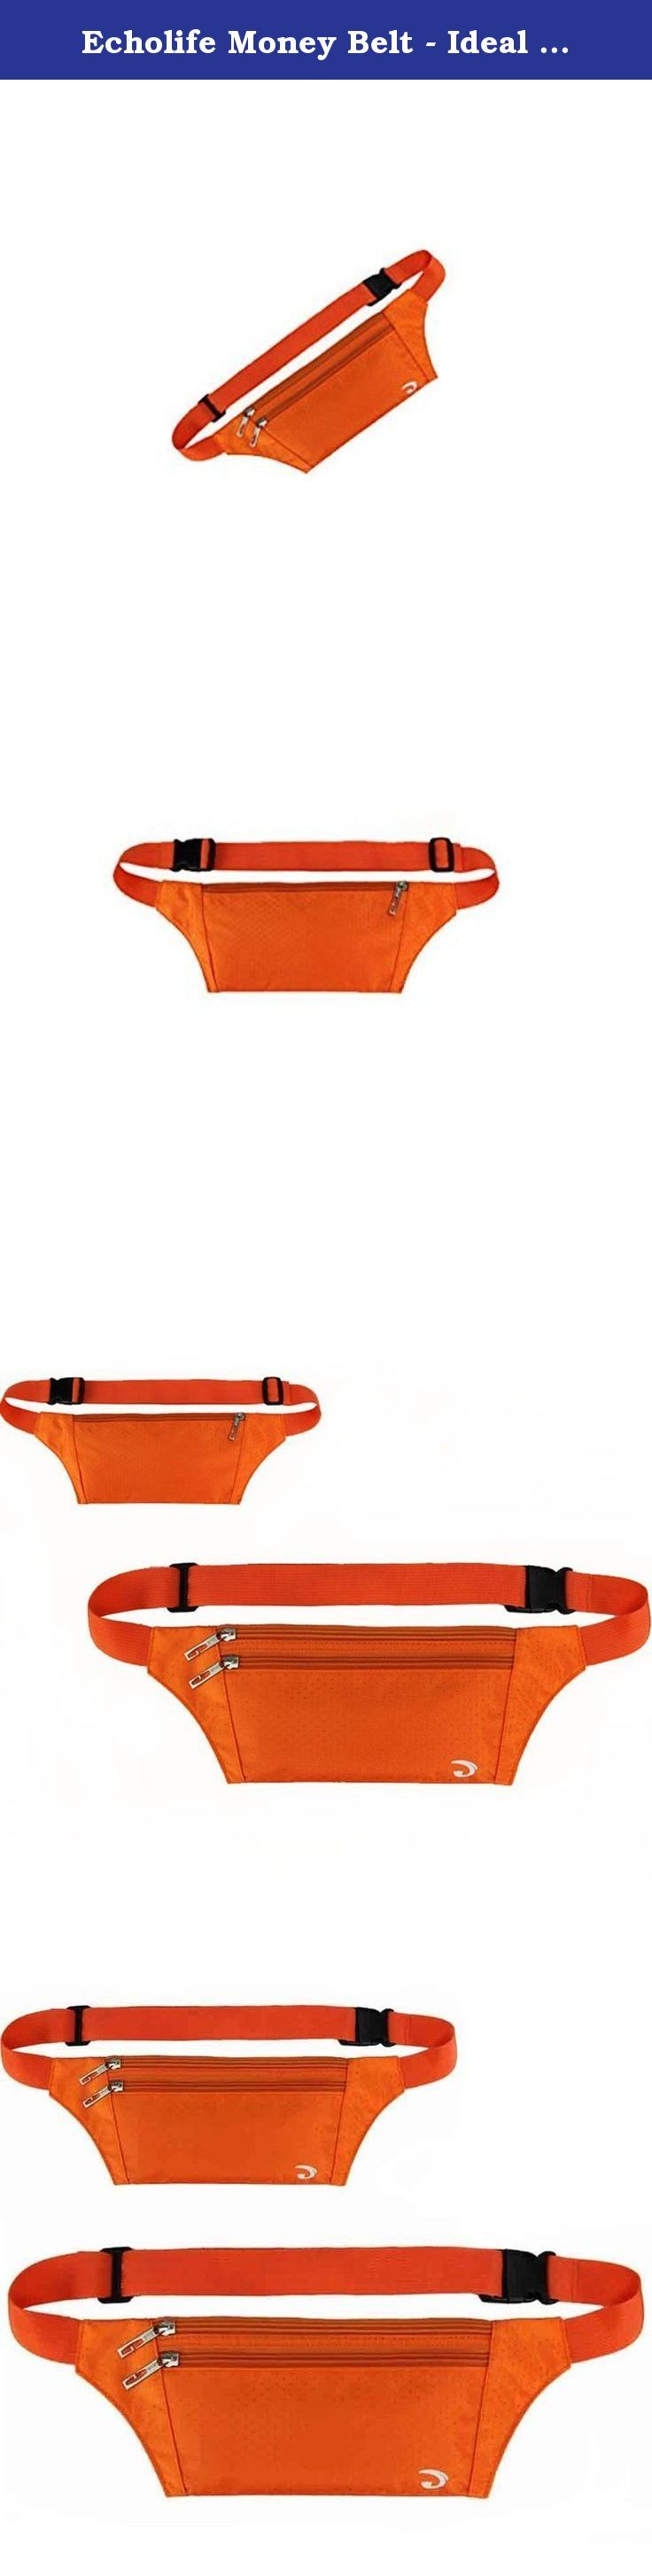 Echolife Money Belt - Ideal Travel Waist Bag For Carrying Money, Mobile Phone,Passport, Credit Cards And I.D, Adjustable Strap,Side Clip, Washable(2 Pack) (Orange+Orange). Simple Design Makes Travelling That Whole Lot Safer We all have reservations of being abroad and carrying money in our wallets, especially with the vast amount of pickpocketing that naturally occurs in any tourist trap. Having peace of mind knowing that your money, passport or credit cards are safe can be a huge burden...